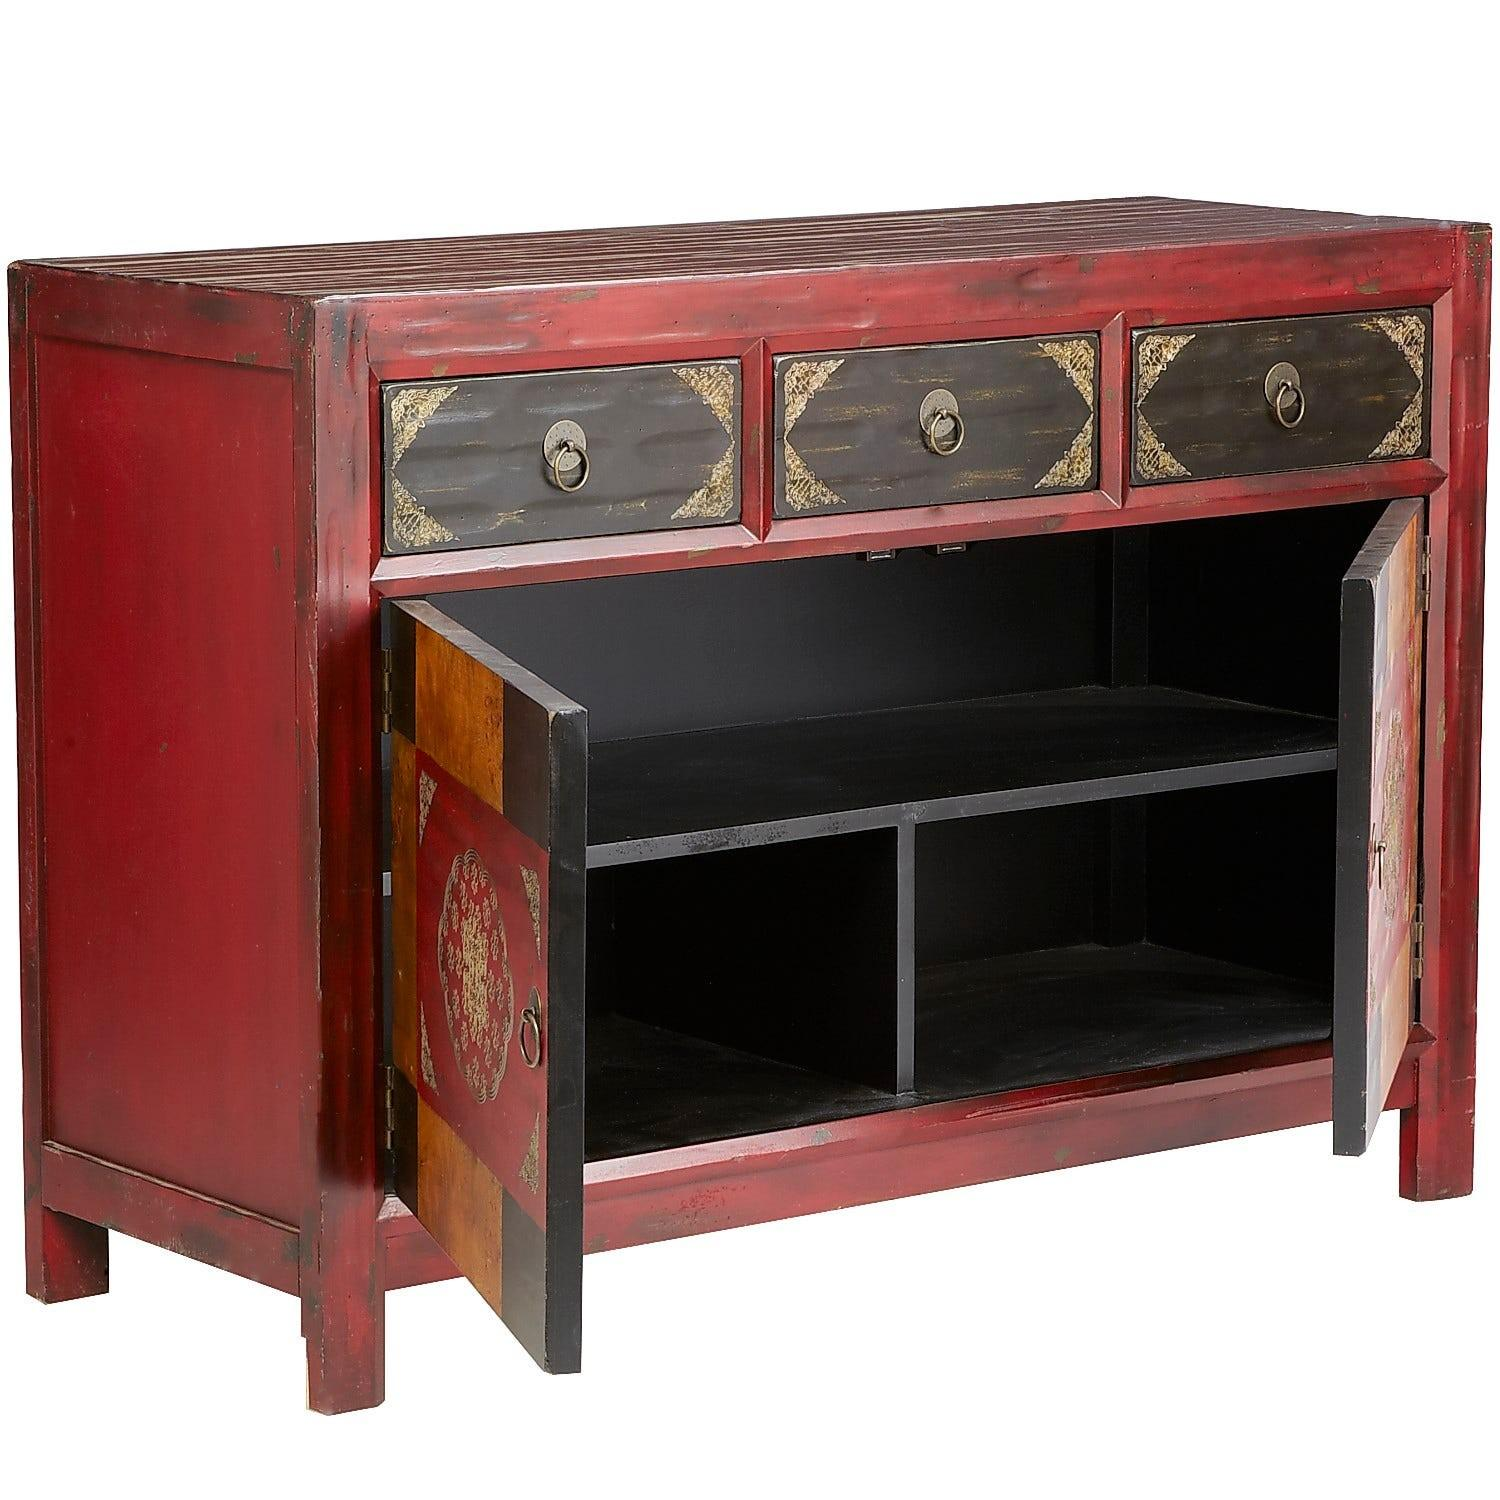 Pier 1 Hand-Painted Credenza/Media Stand - image-1